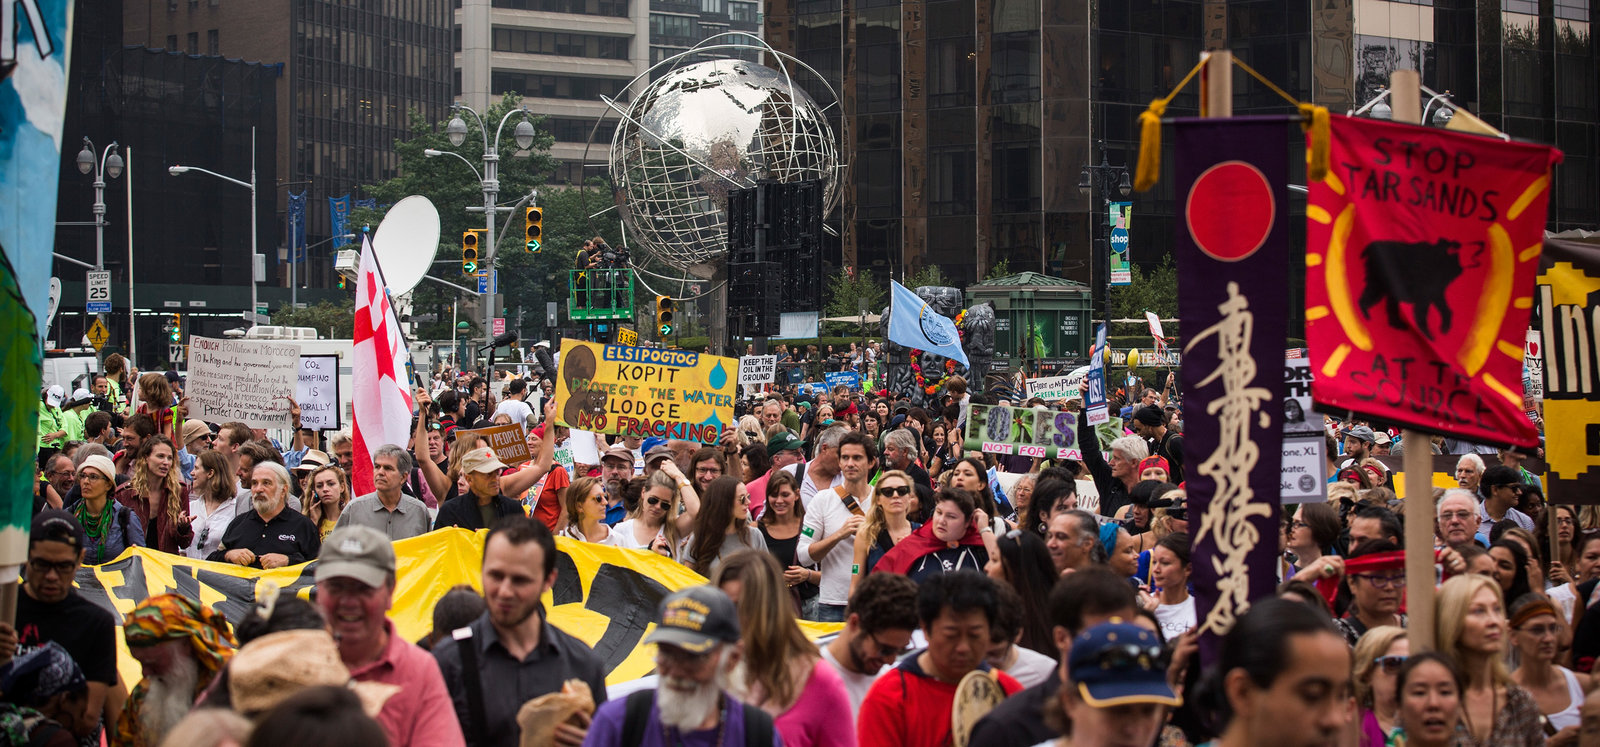 People's Climate March filled New York City streets in 2014